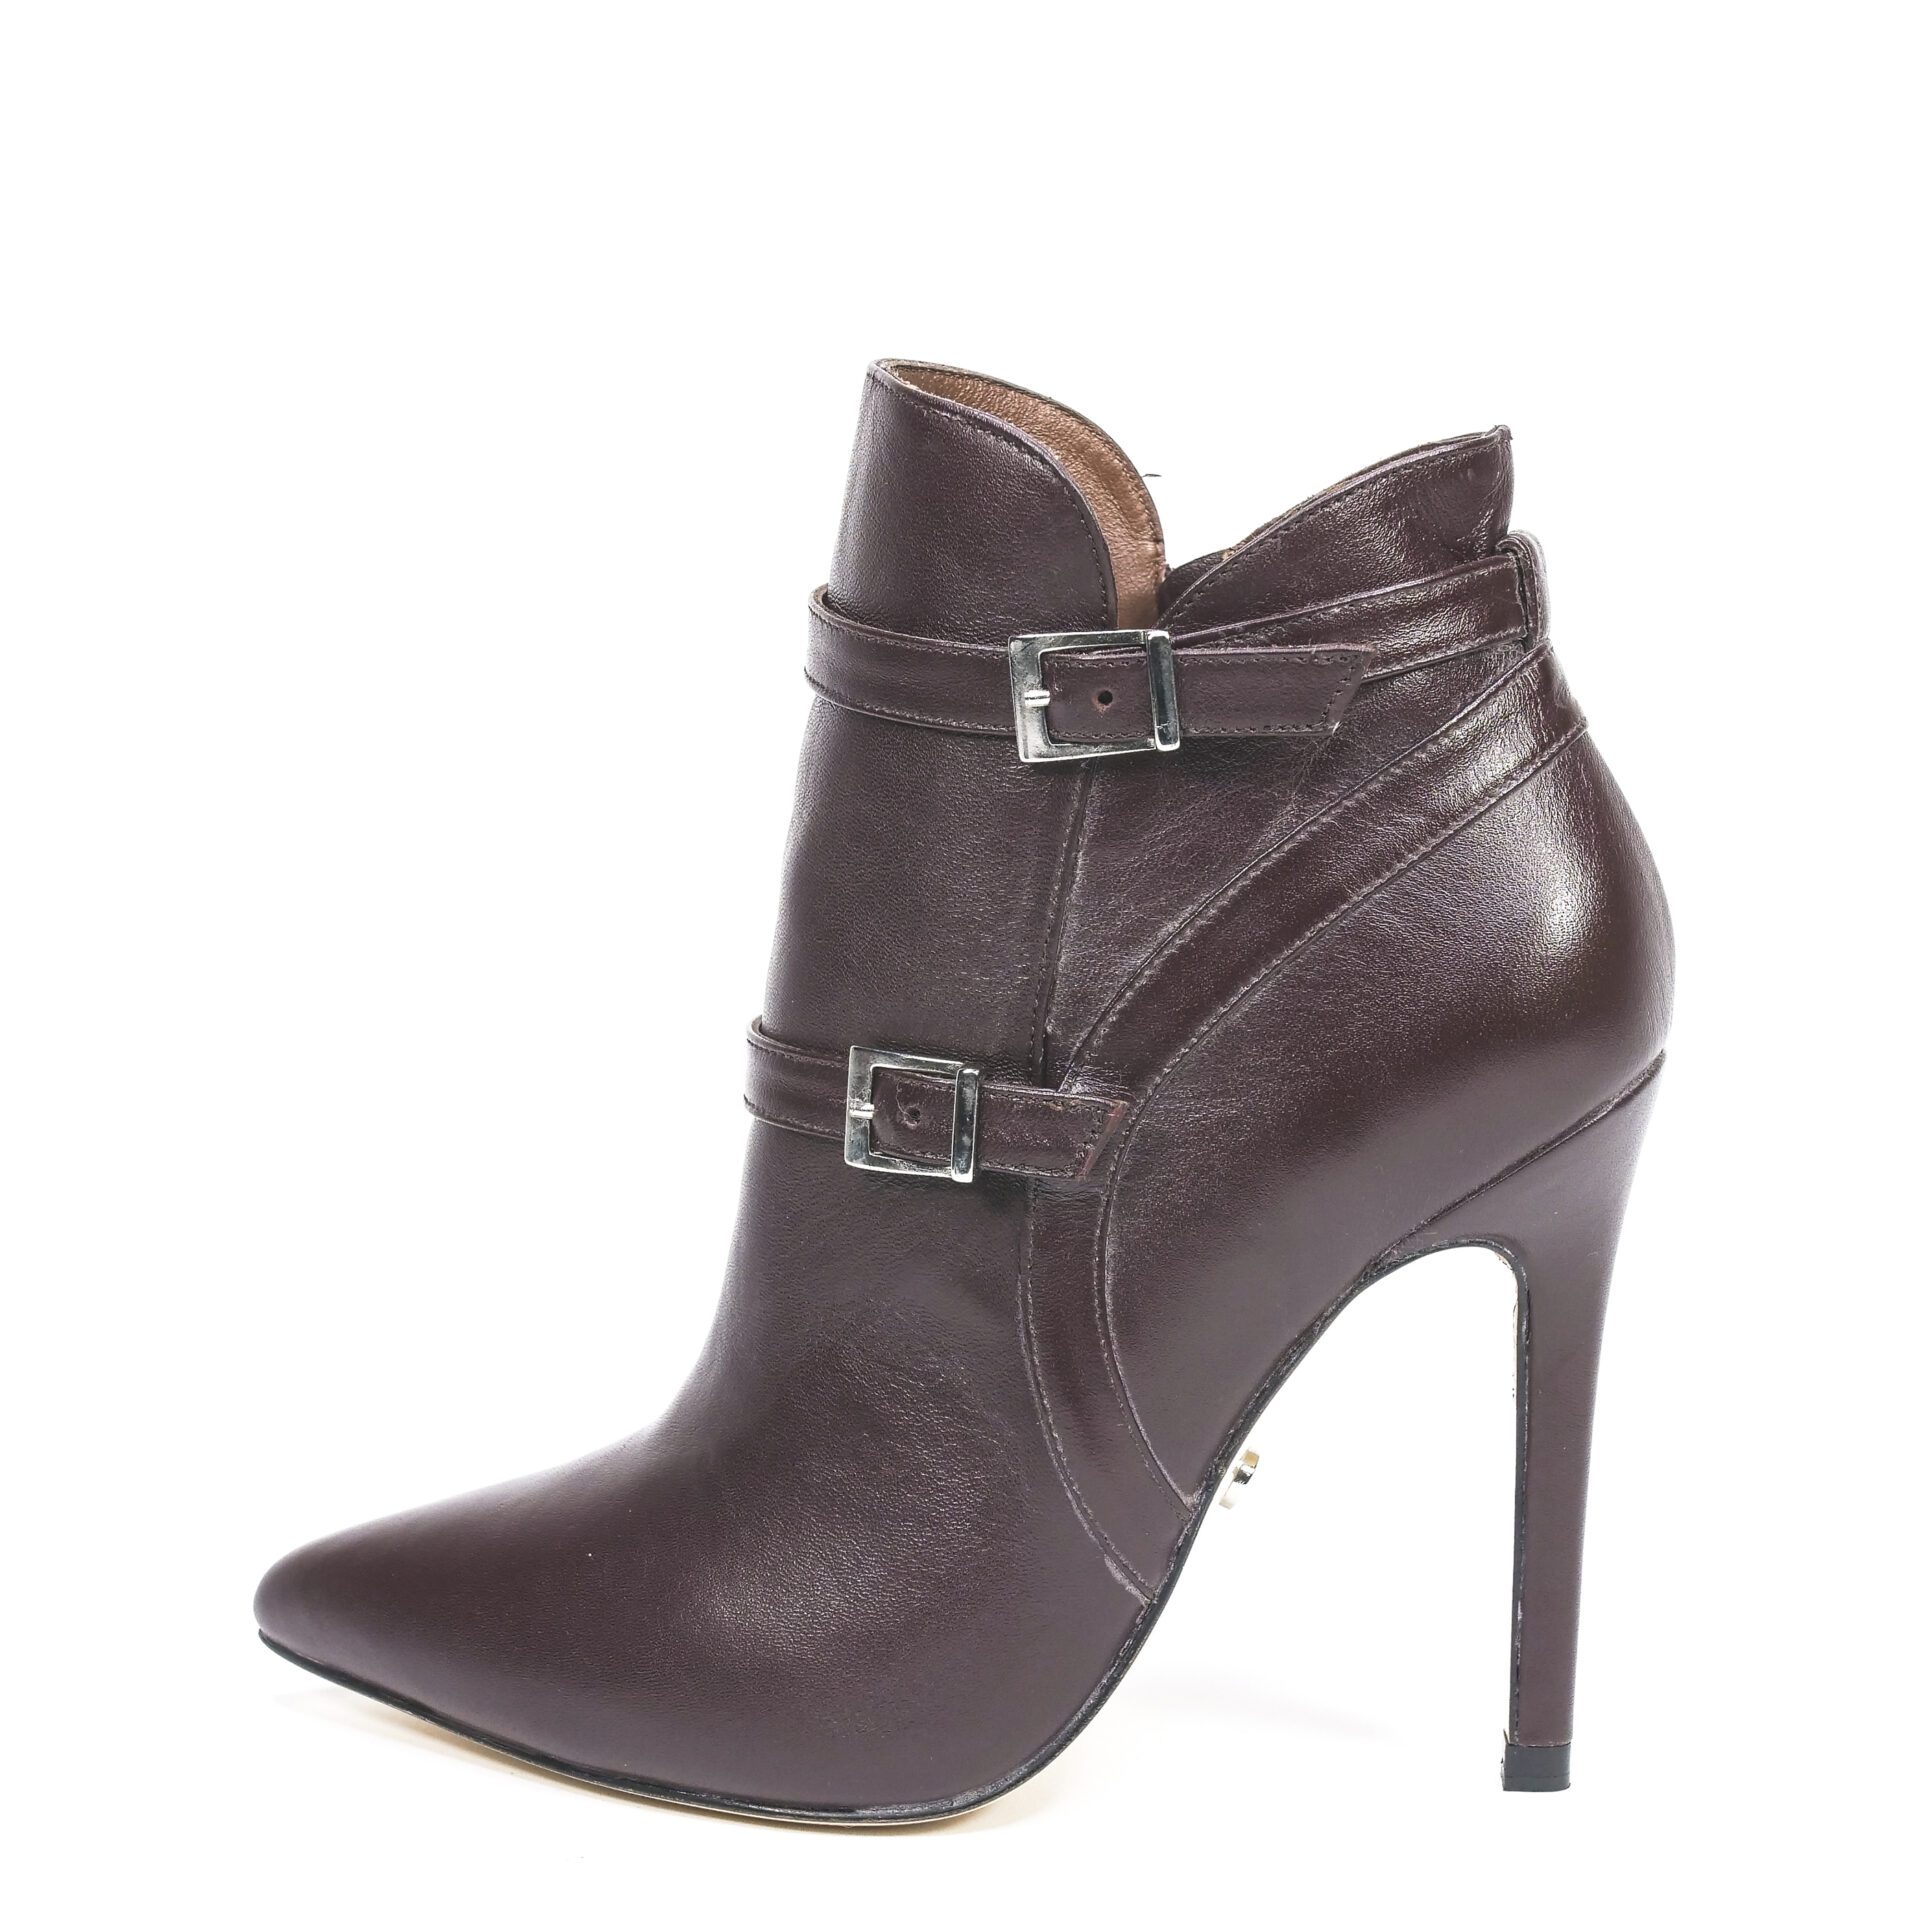 brown leather pointed-toe bootie